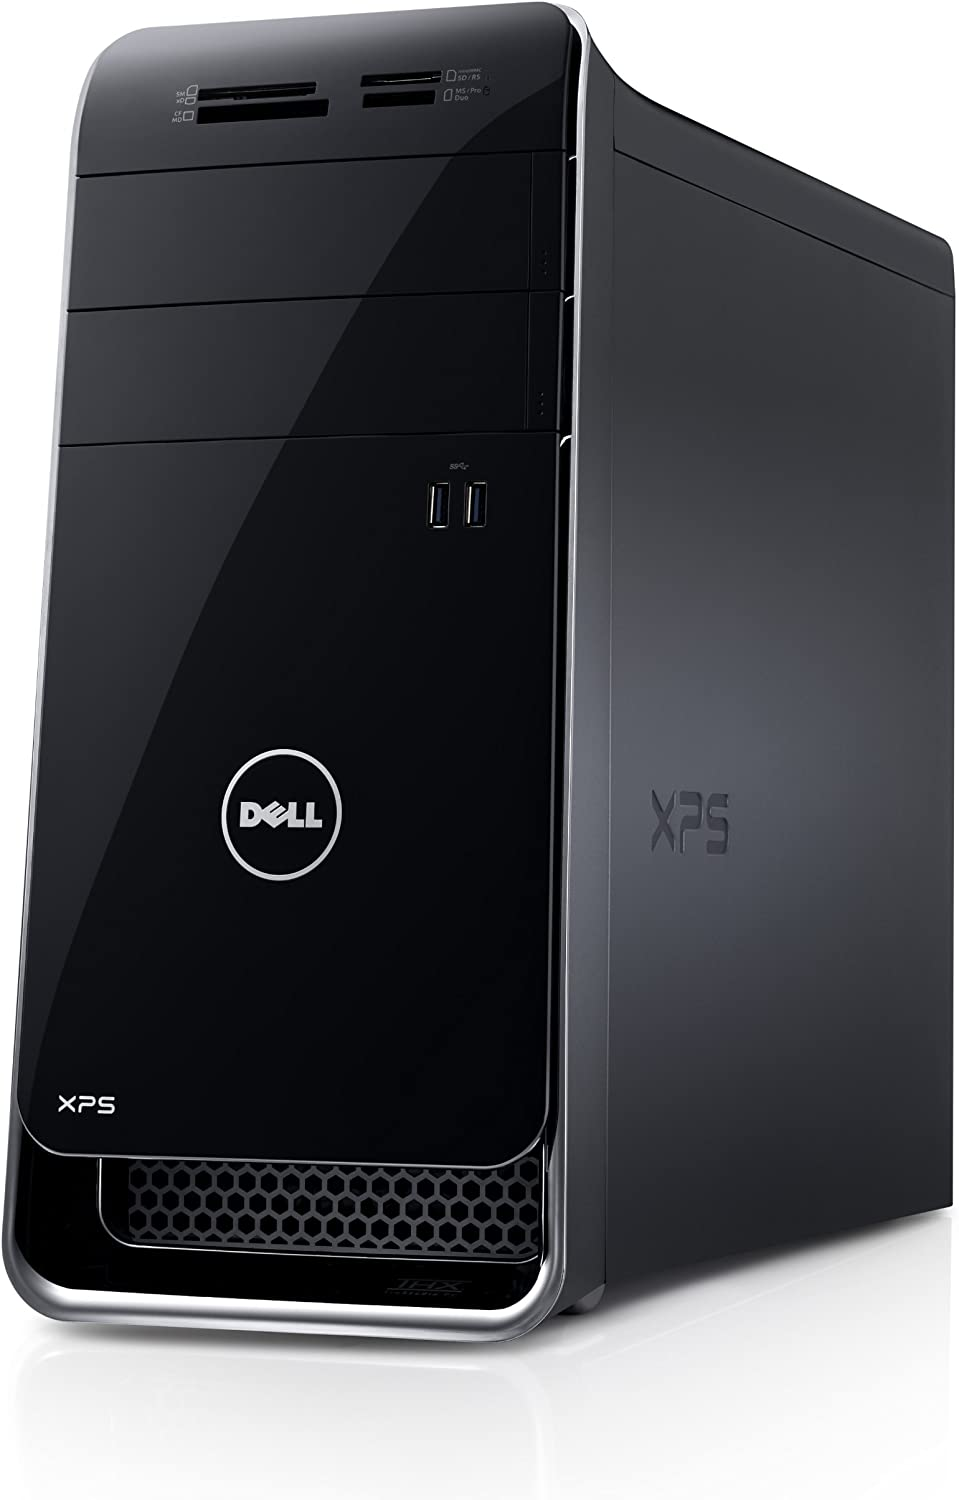 Dell XPS 8700 Desktop Computers - Dell X8700-1563BLK Desktop & 3.4 GHz Intel Core i7-4770 (Discontinued by Manufacturer)